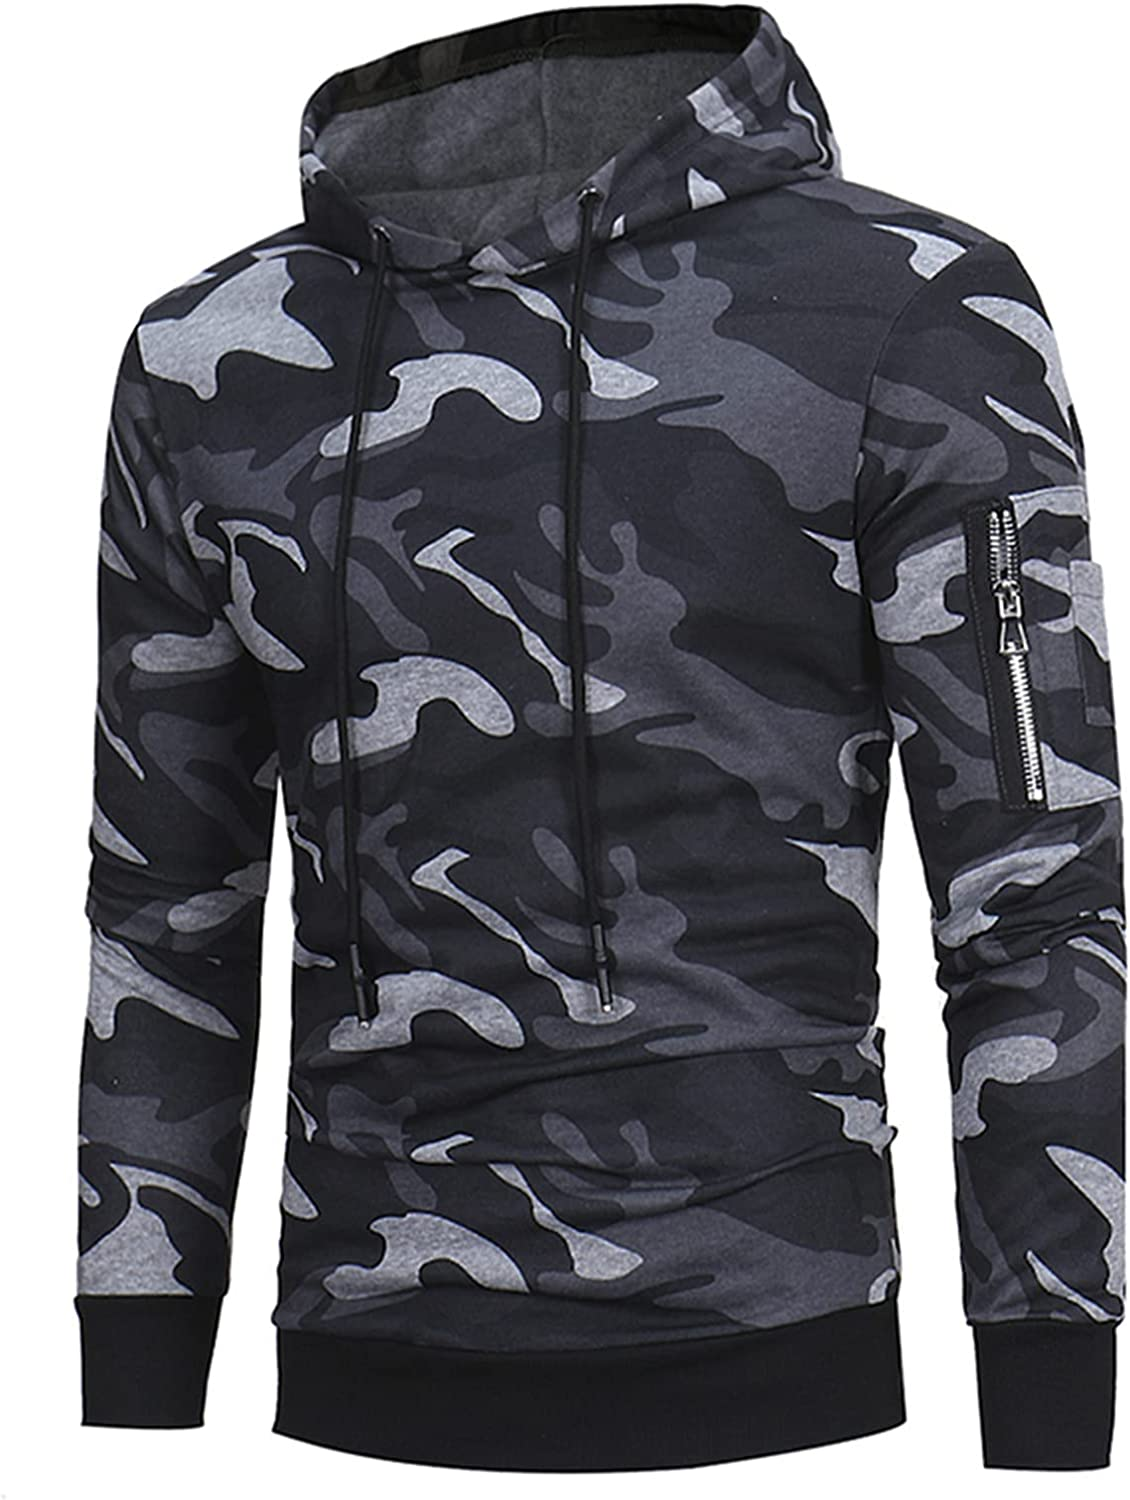 XXBR Camo Hoodies for Mens, Fall Camouflage Ribbed Cuff Drawstring Casual Hooded Sweatshirts Workout Fitness Pullover